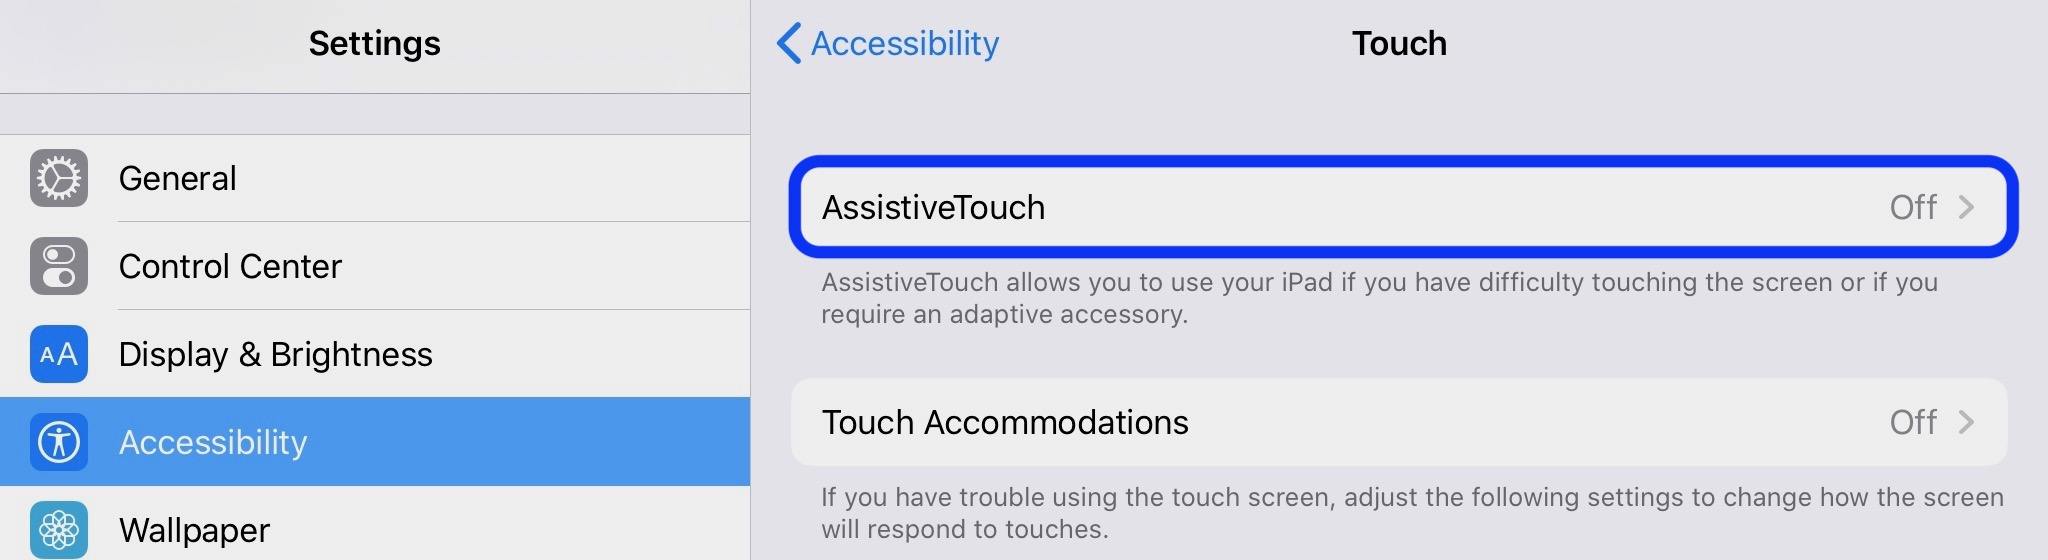 iOS 13: How to use a mouse with your iPad - 9to5Mac